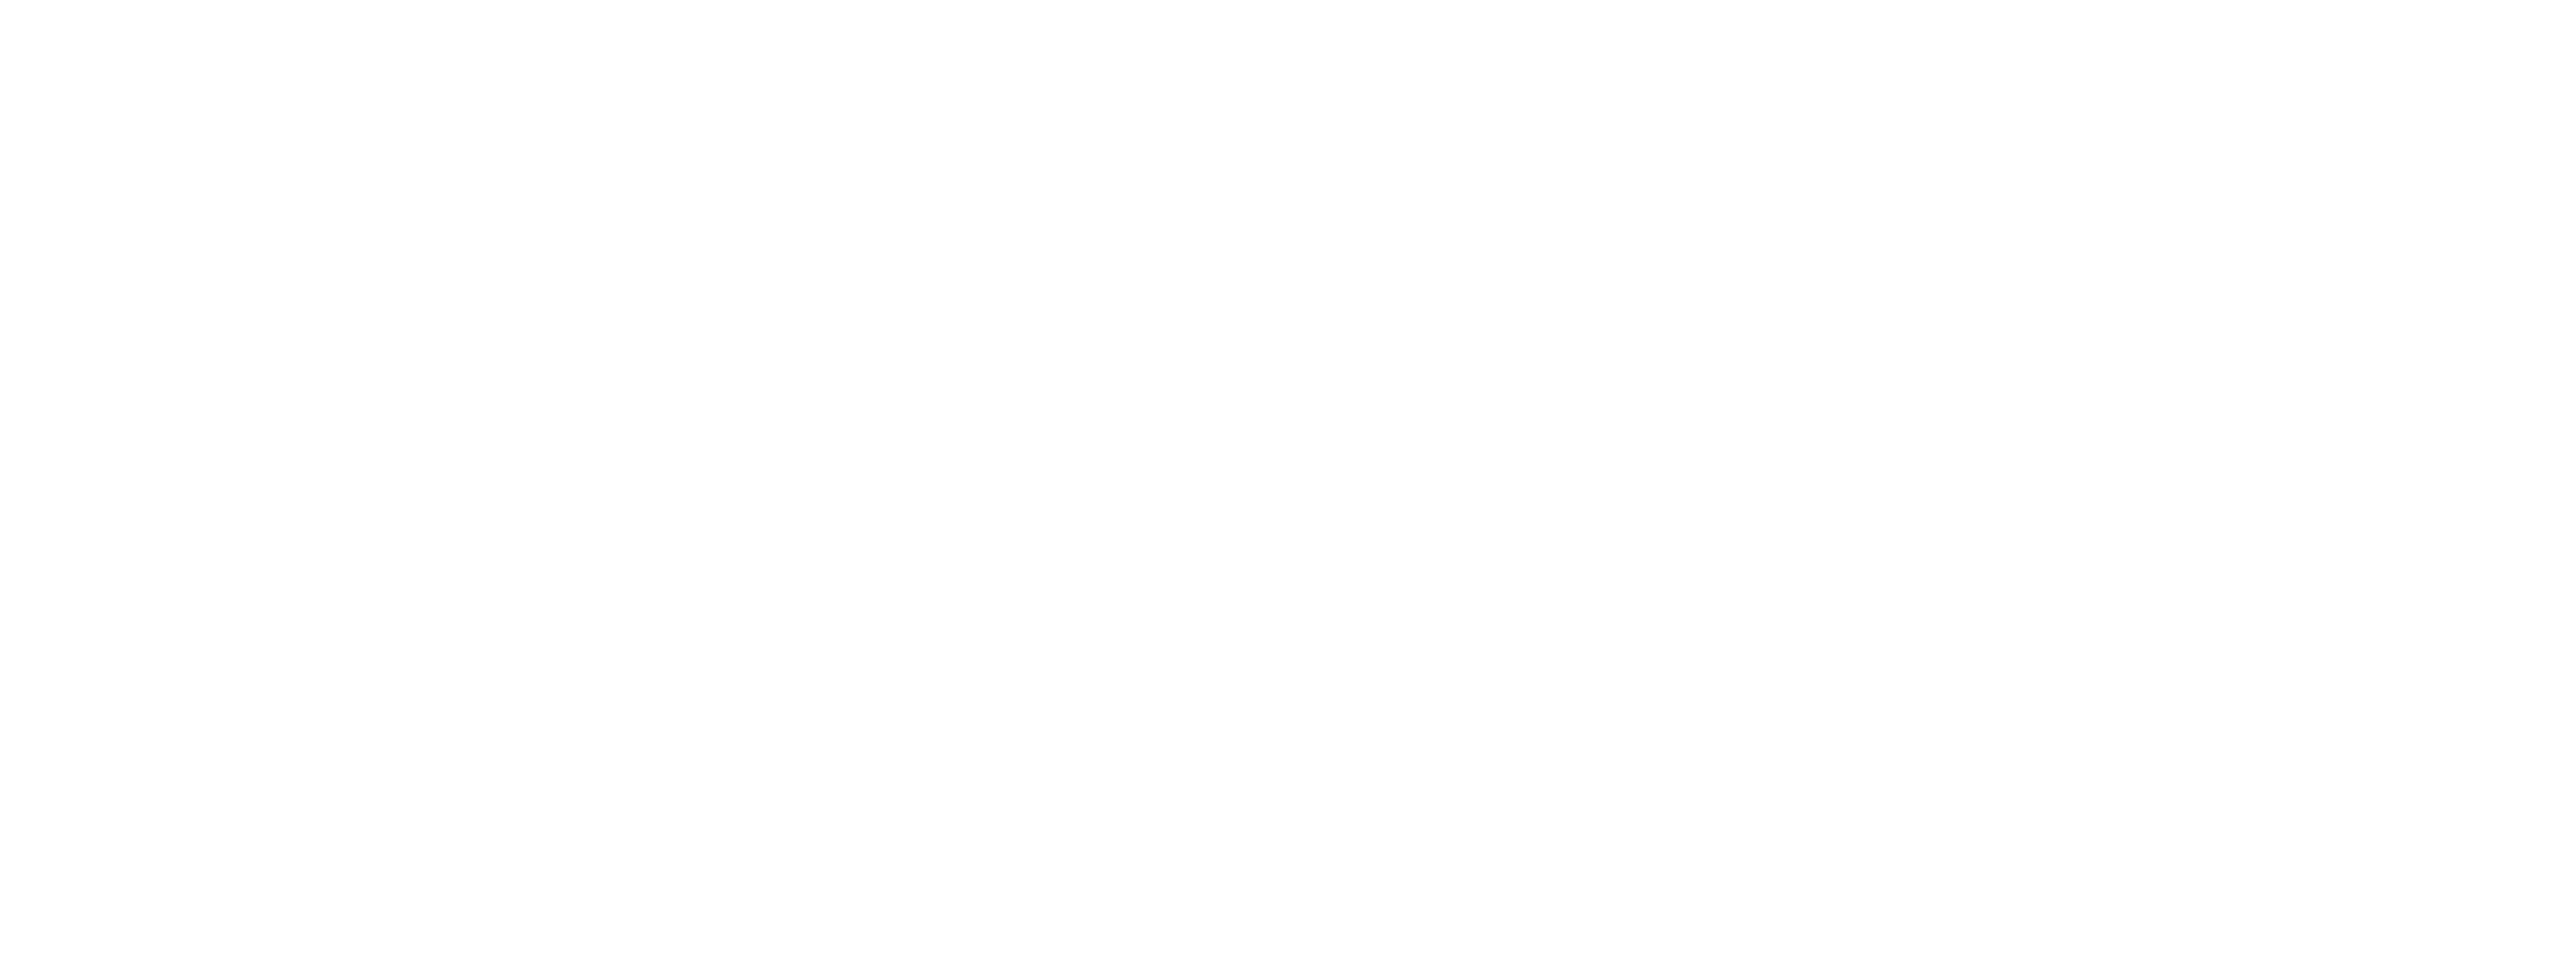 Sales Team Six, an SDVOSB provider of sales SaaS tools from HubSpot, Clickfunnels, and Pipedrive